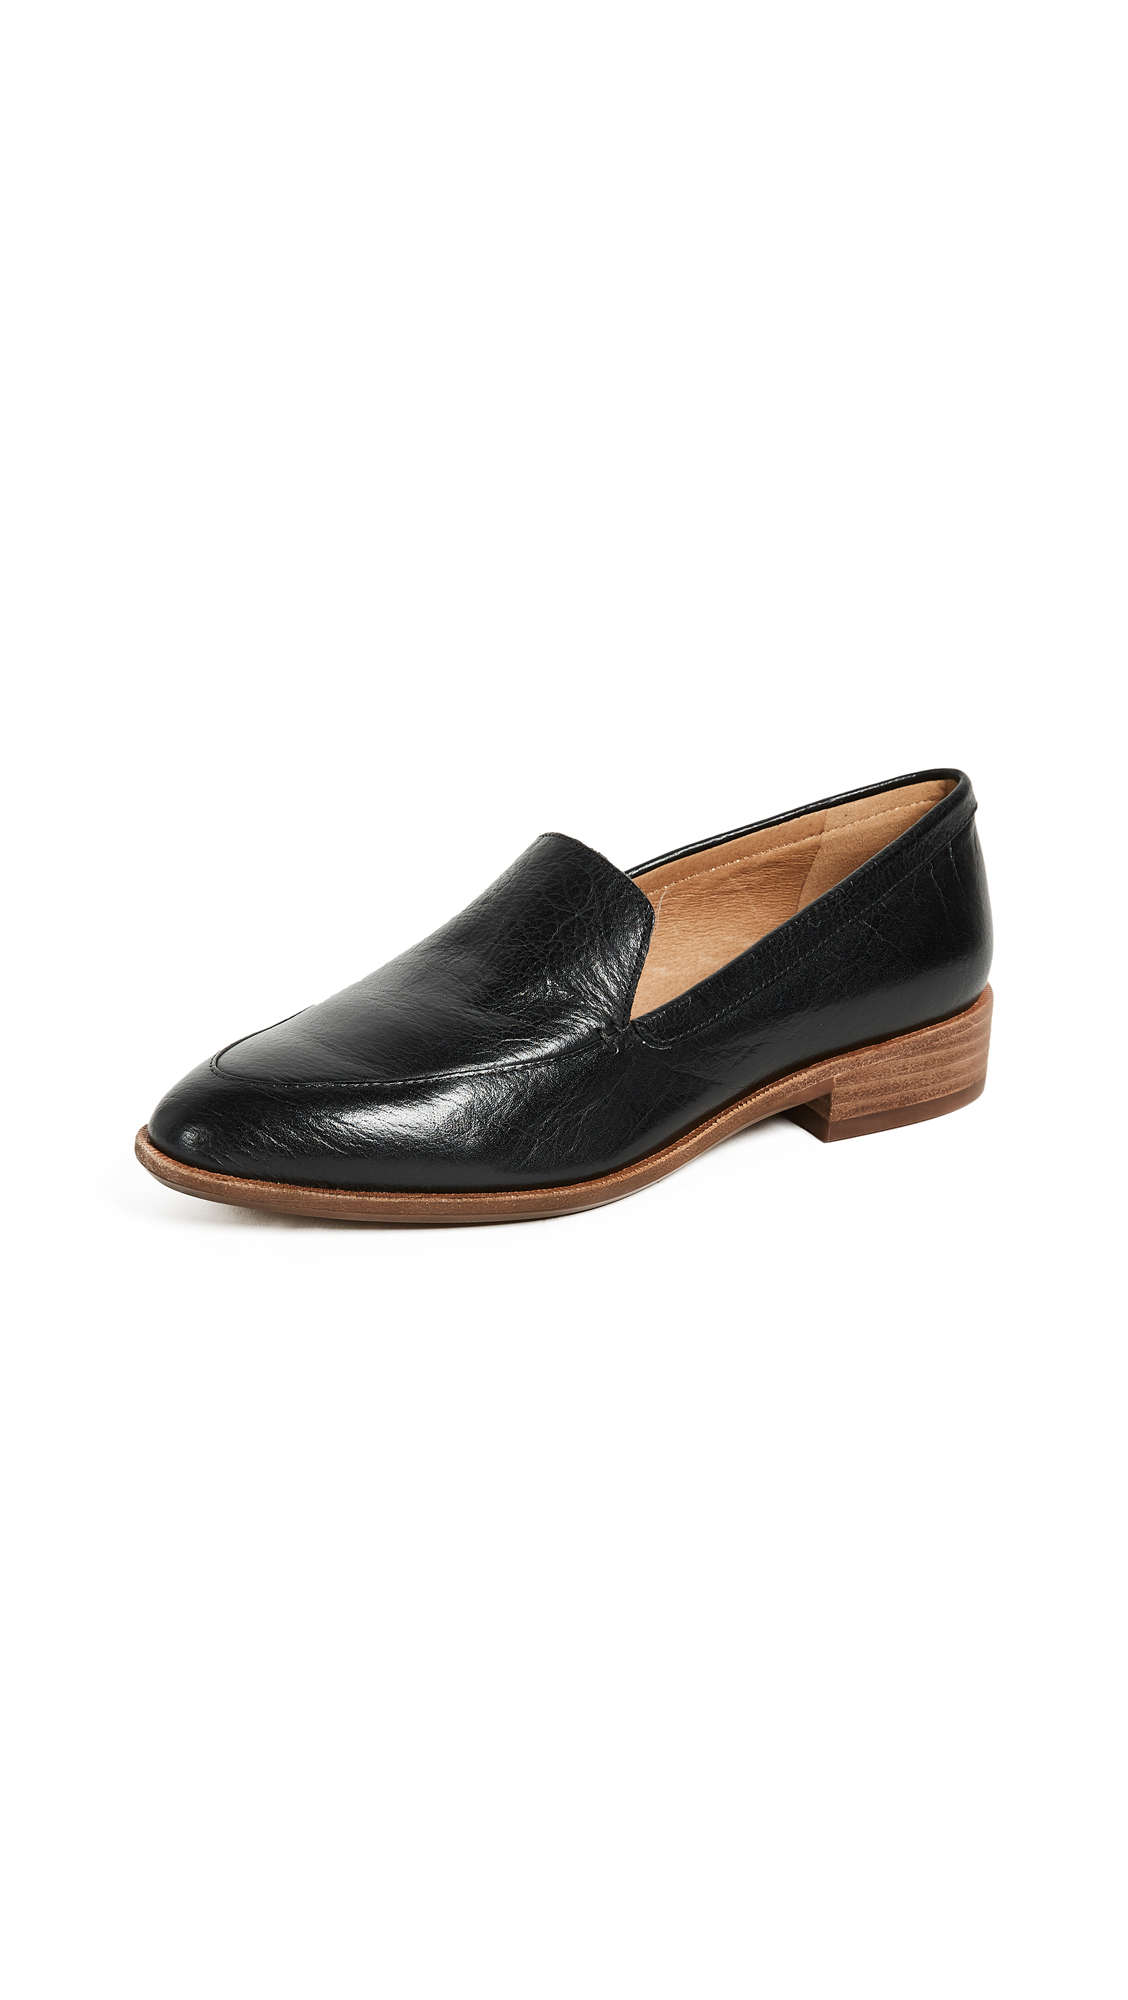 Madewell Perin Loafers - True Black